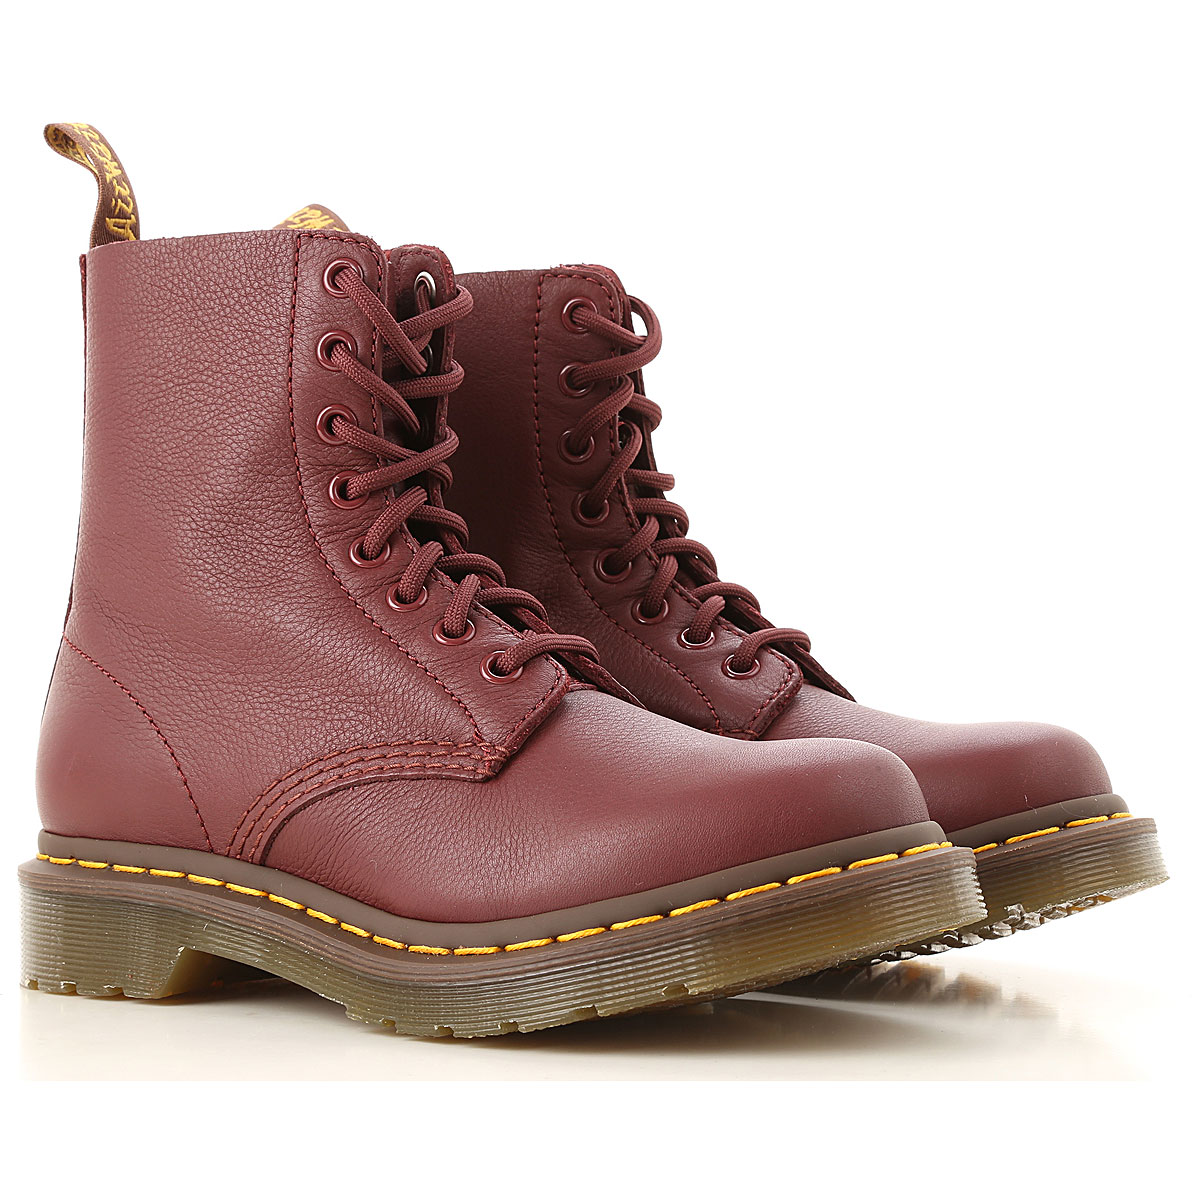 Dr. Martens Boots for Women Booties On Sale in Outlet USA - GOOFASH